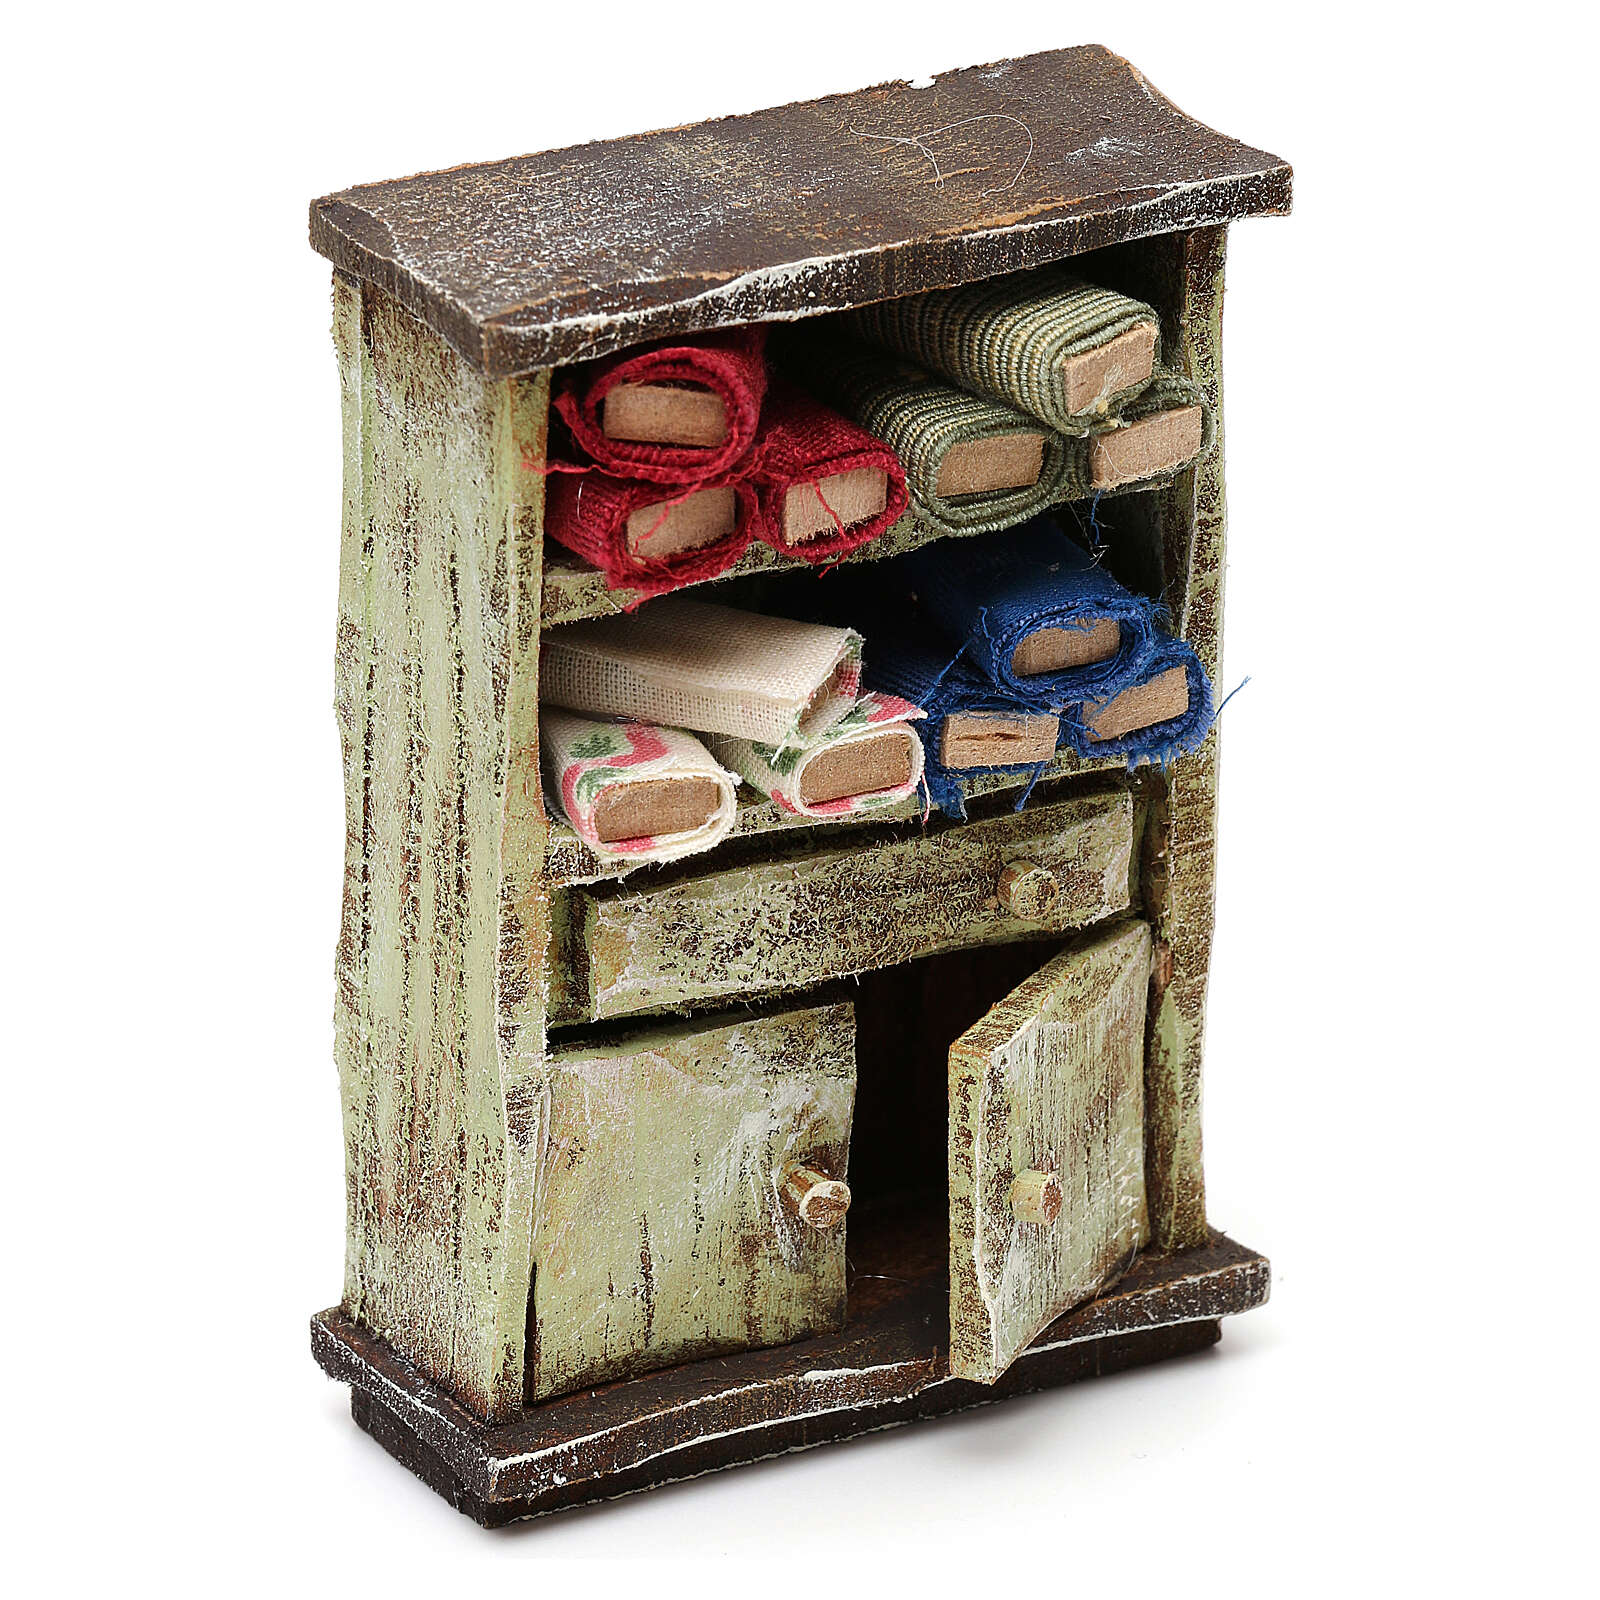 Tailor shop cabinet with fabric, for 10 cm nativity 10x5x5 cm 4